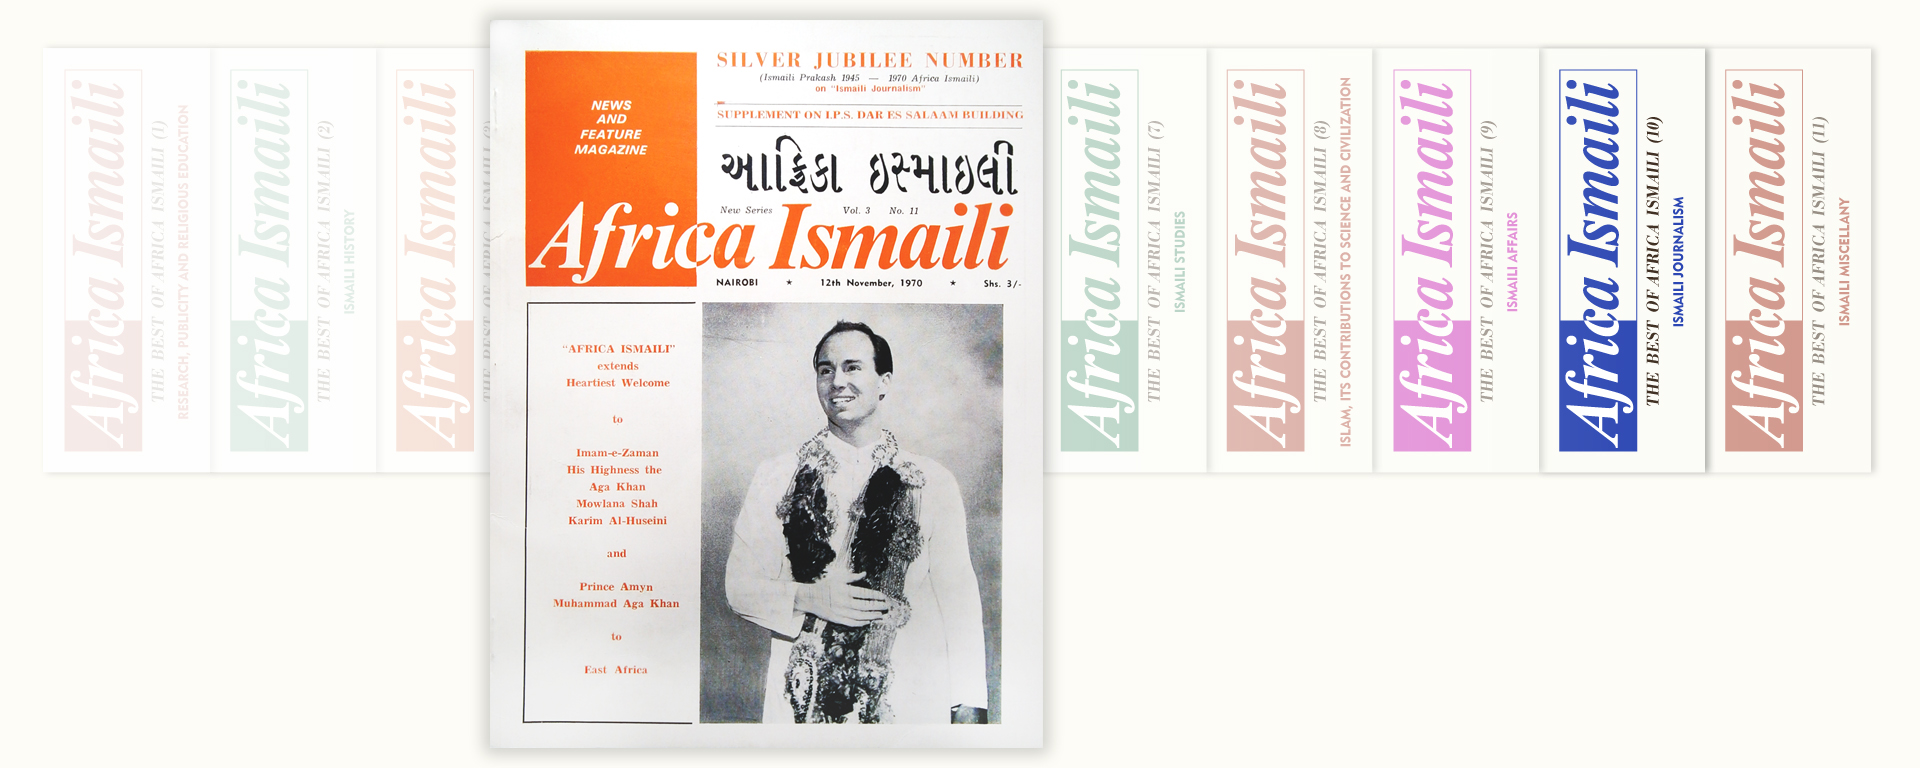 Image: Africa Ismaili cover and Best of Africa Ismaili logos, Mohib Ebrahim (With permission) (Bill C-11, Section 29.21 http://bit.ly/1yRu6UZ)